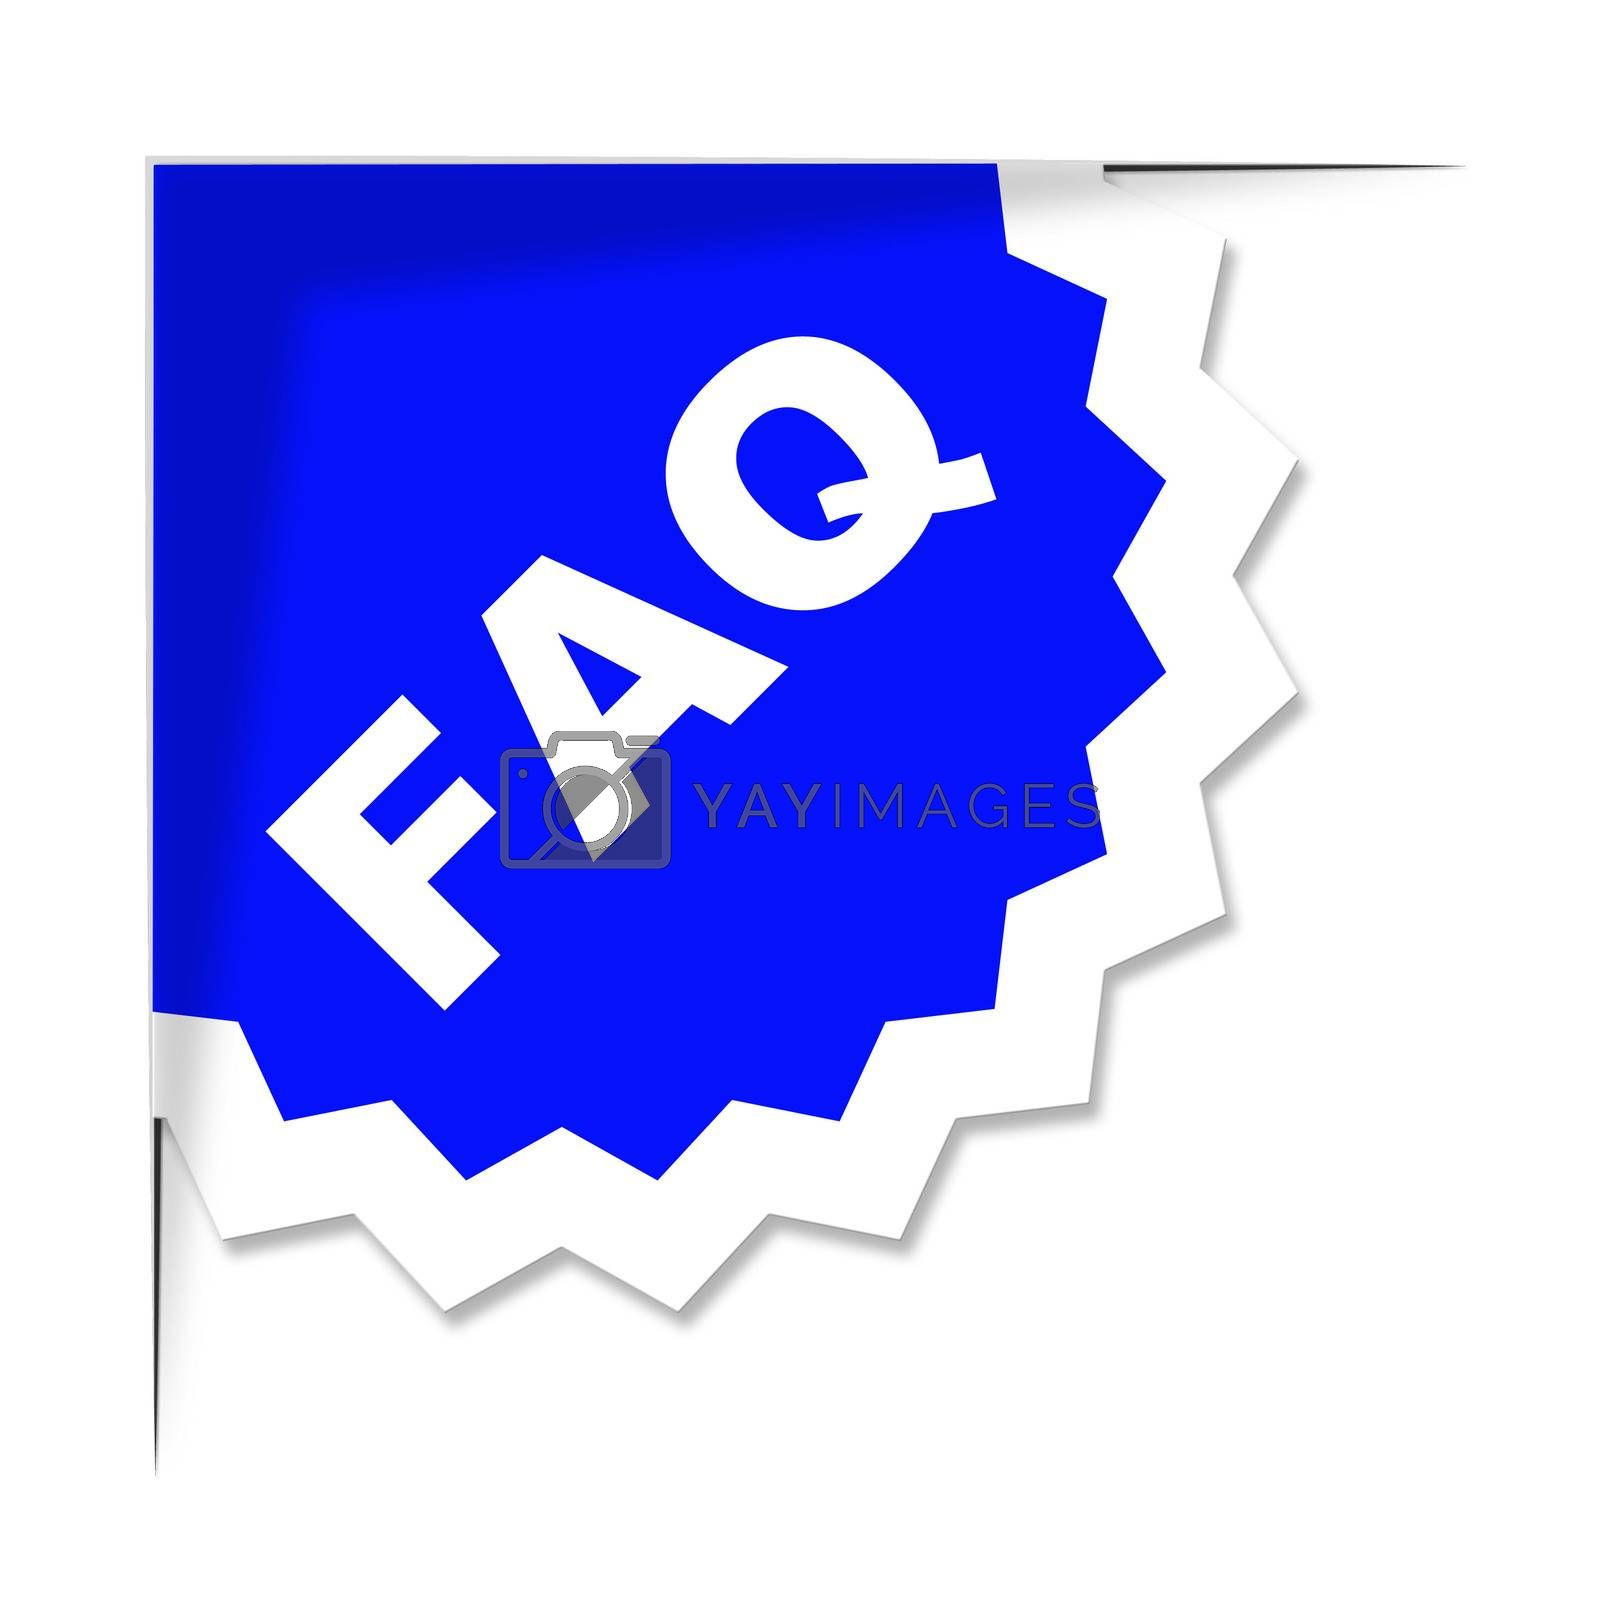 Faq Label Represents Frequently Asked Questions And Advice by stuartmiles